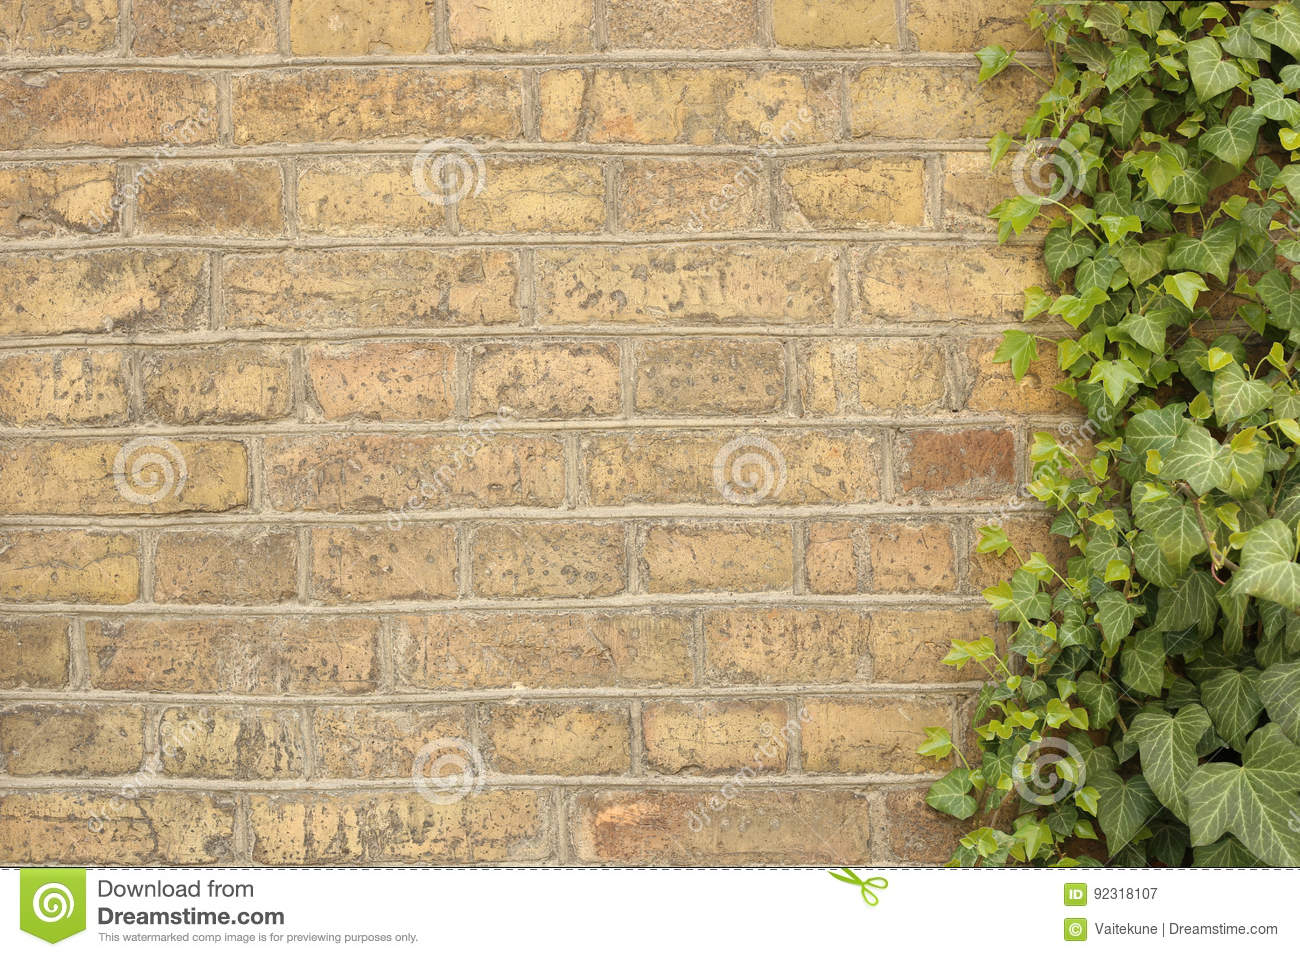 Old Bricks Wall With Creeper. Stock Image - Image of concept, empty ...